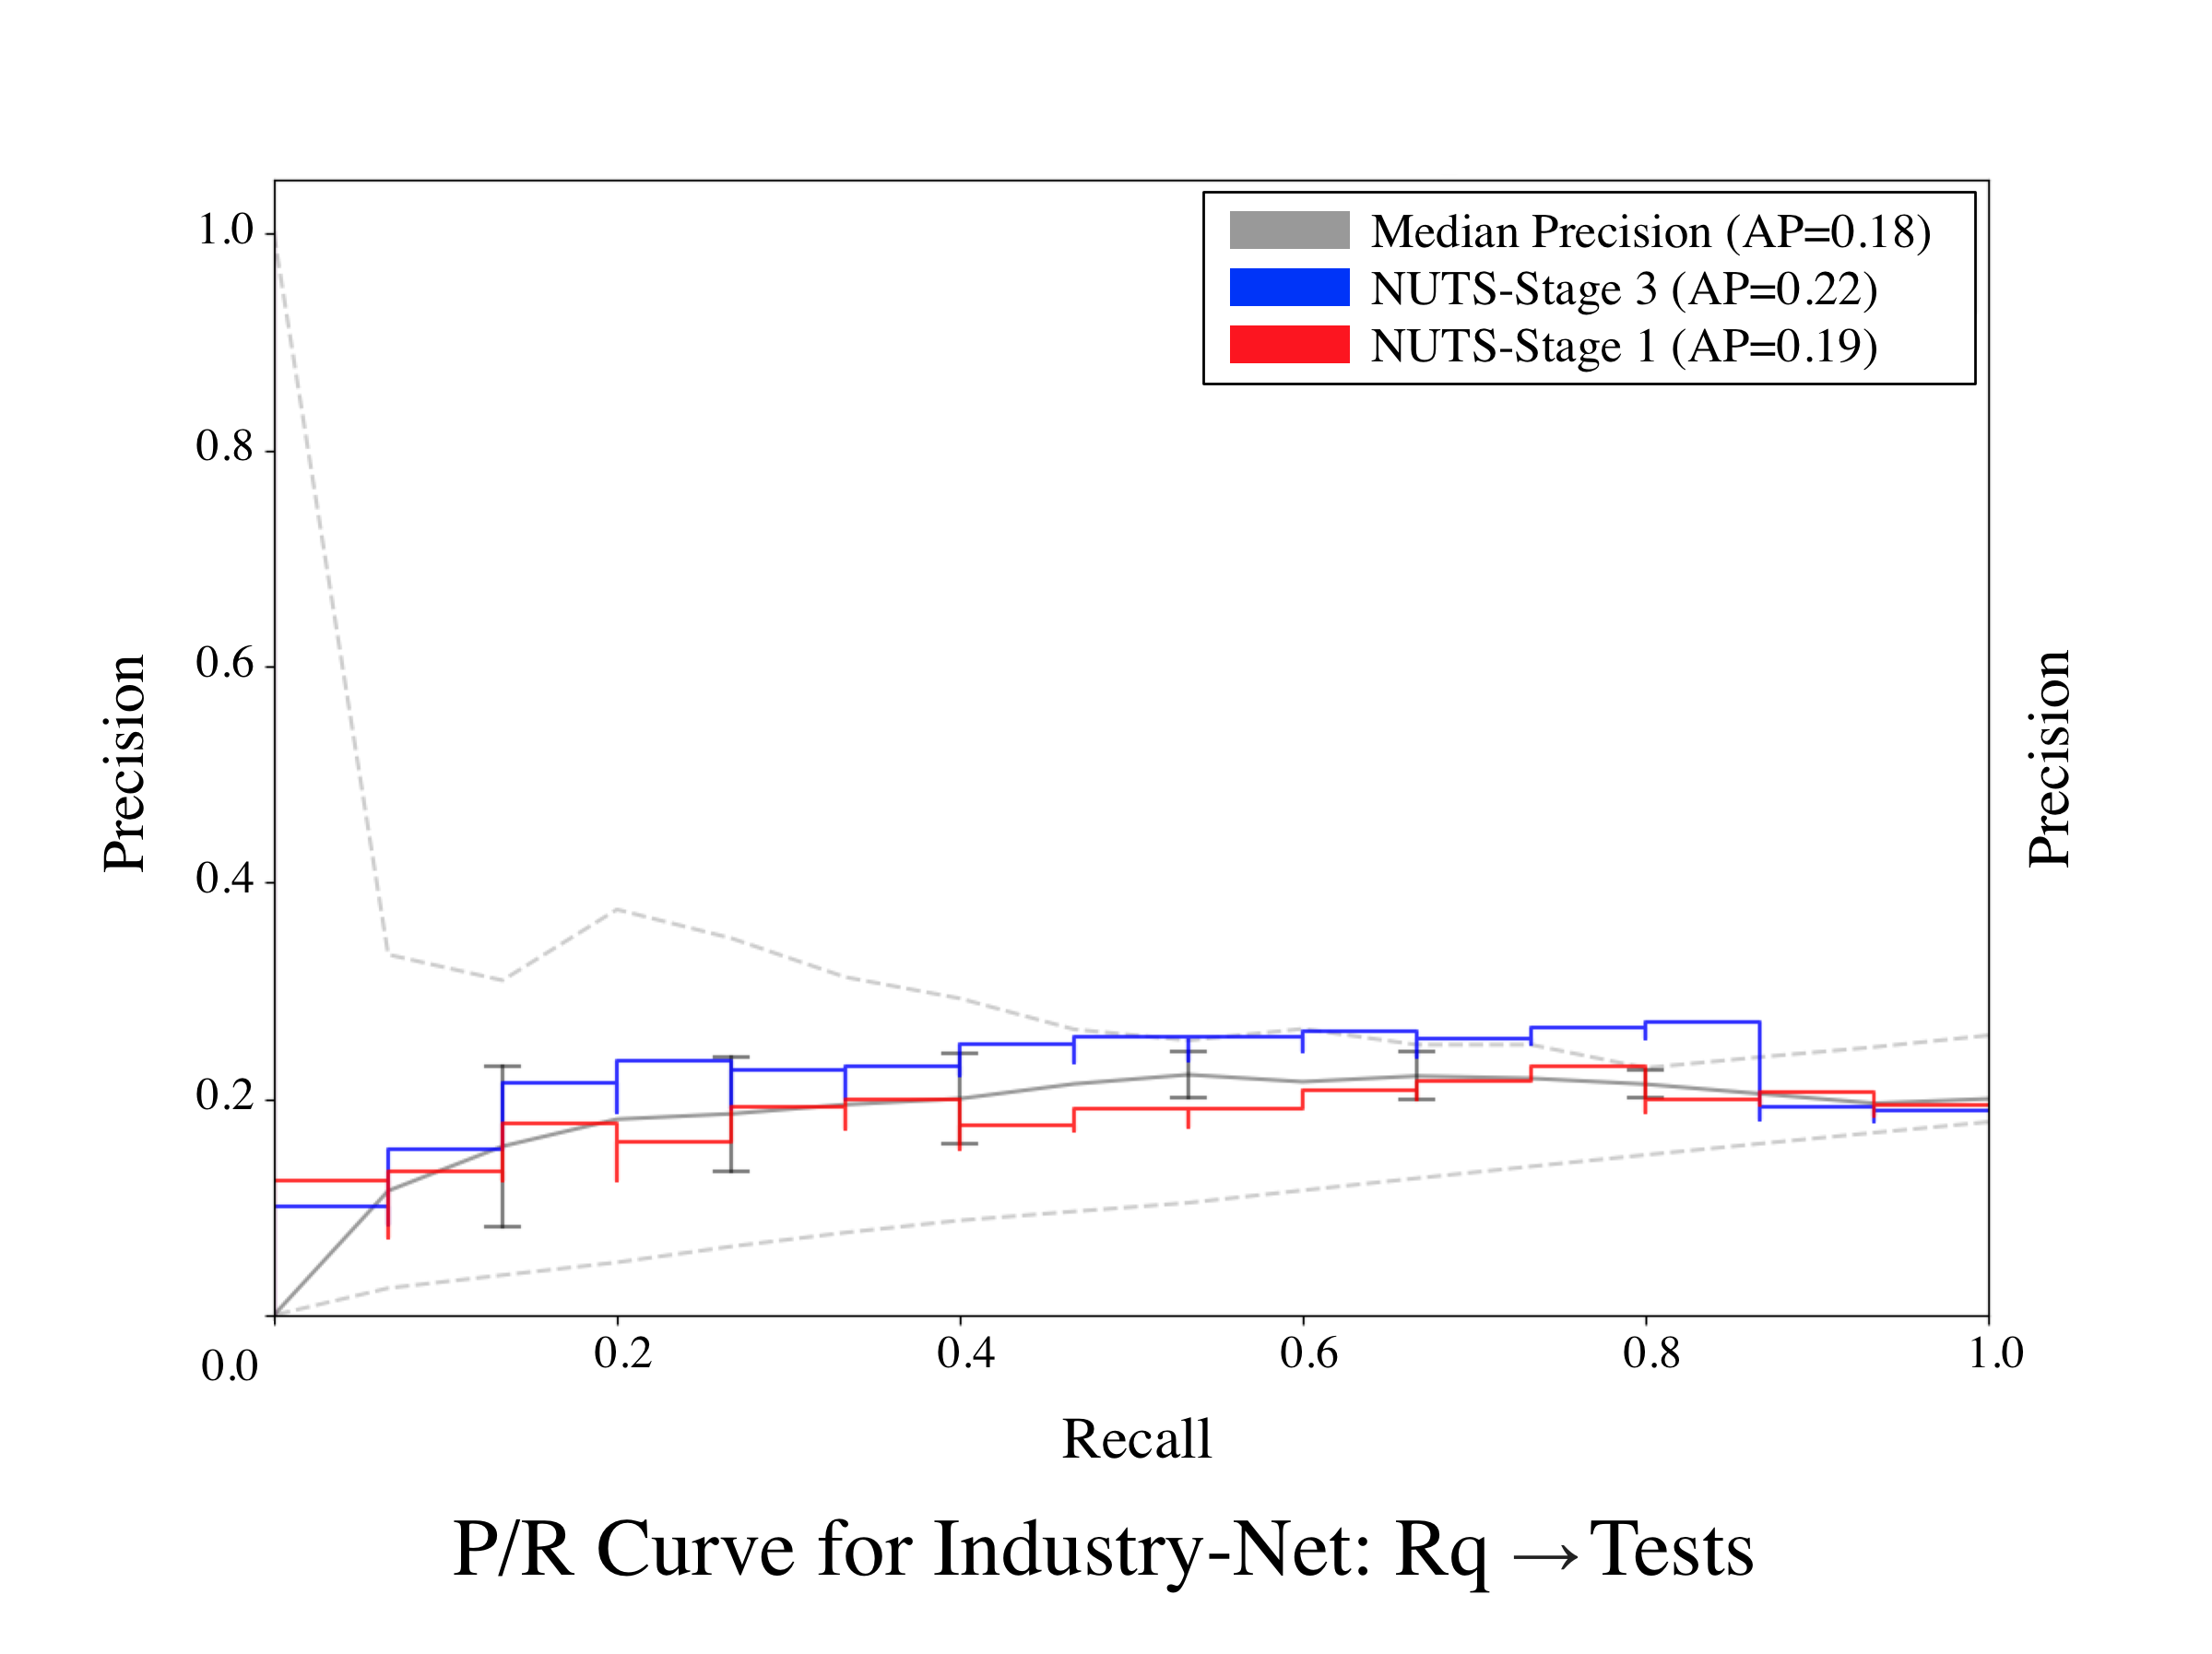 Industry-Net-Rq-Tests-0.65.png